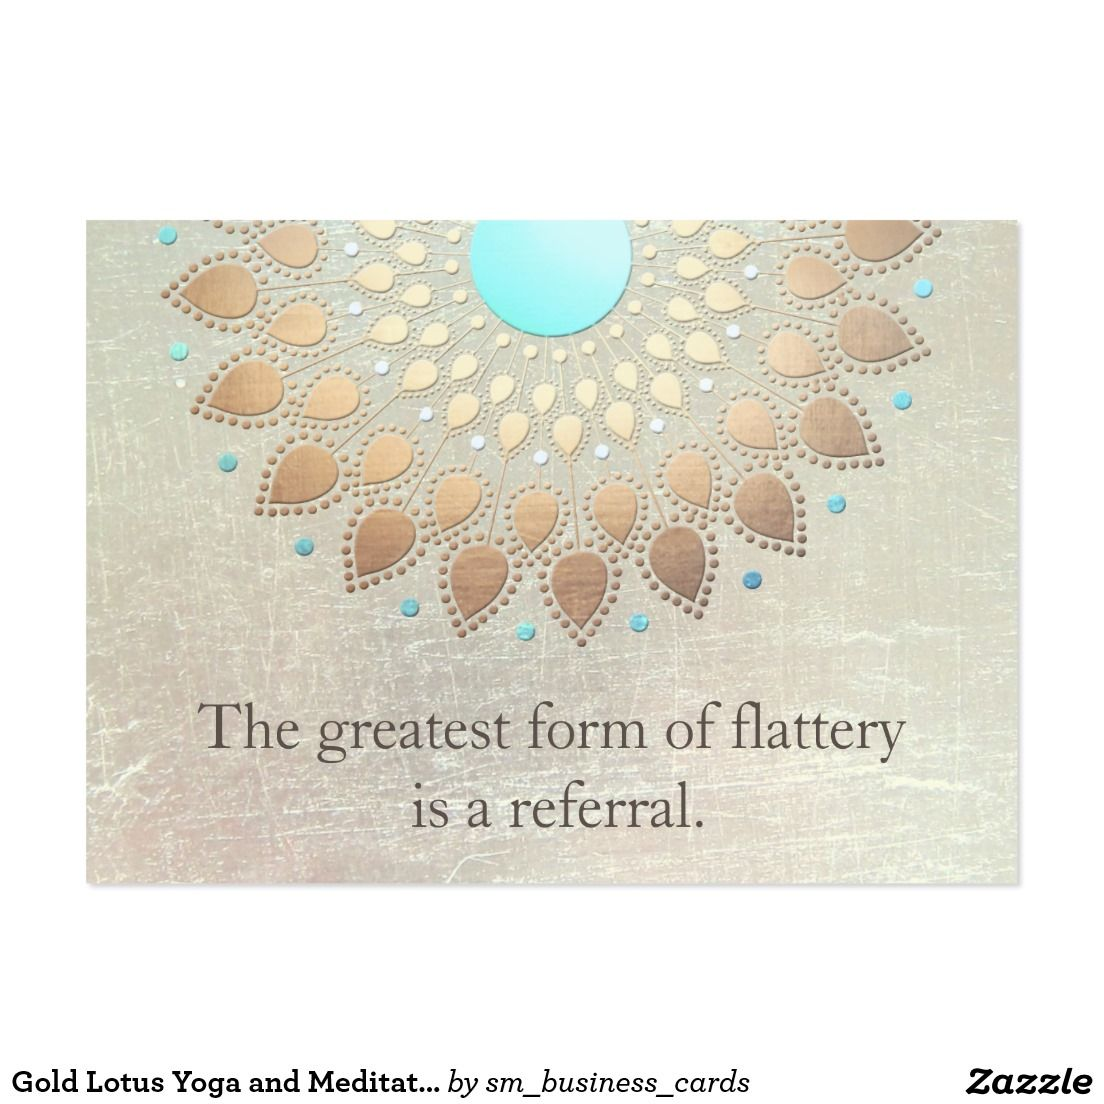 Gold Lotus Yoga and Meditation Referral Card | Business Cards: Large ...